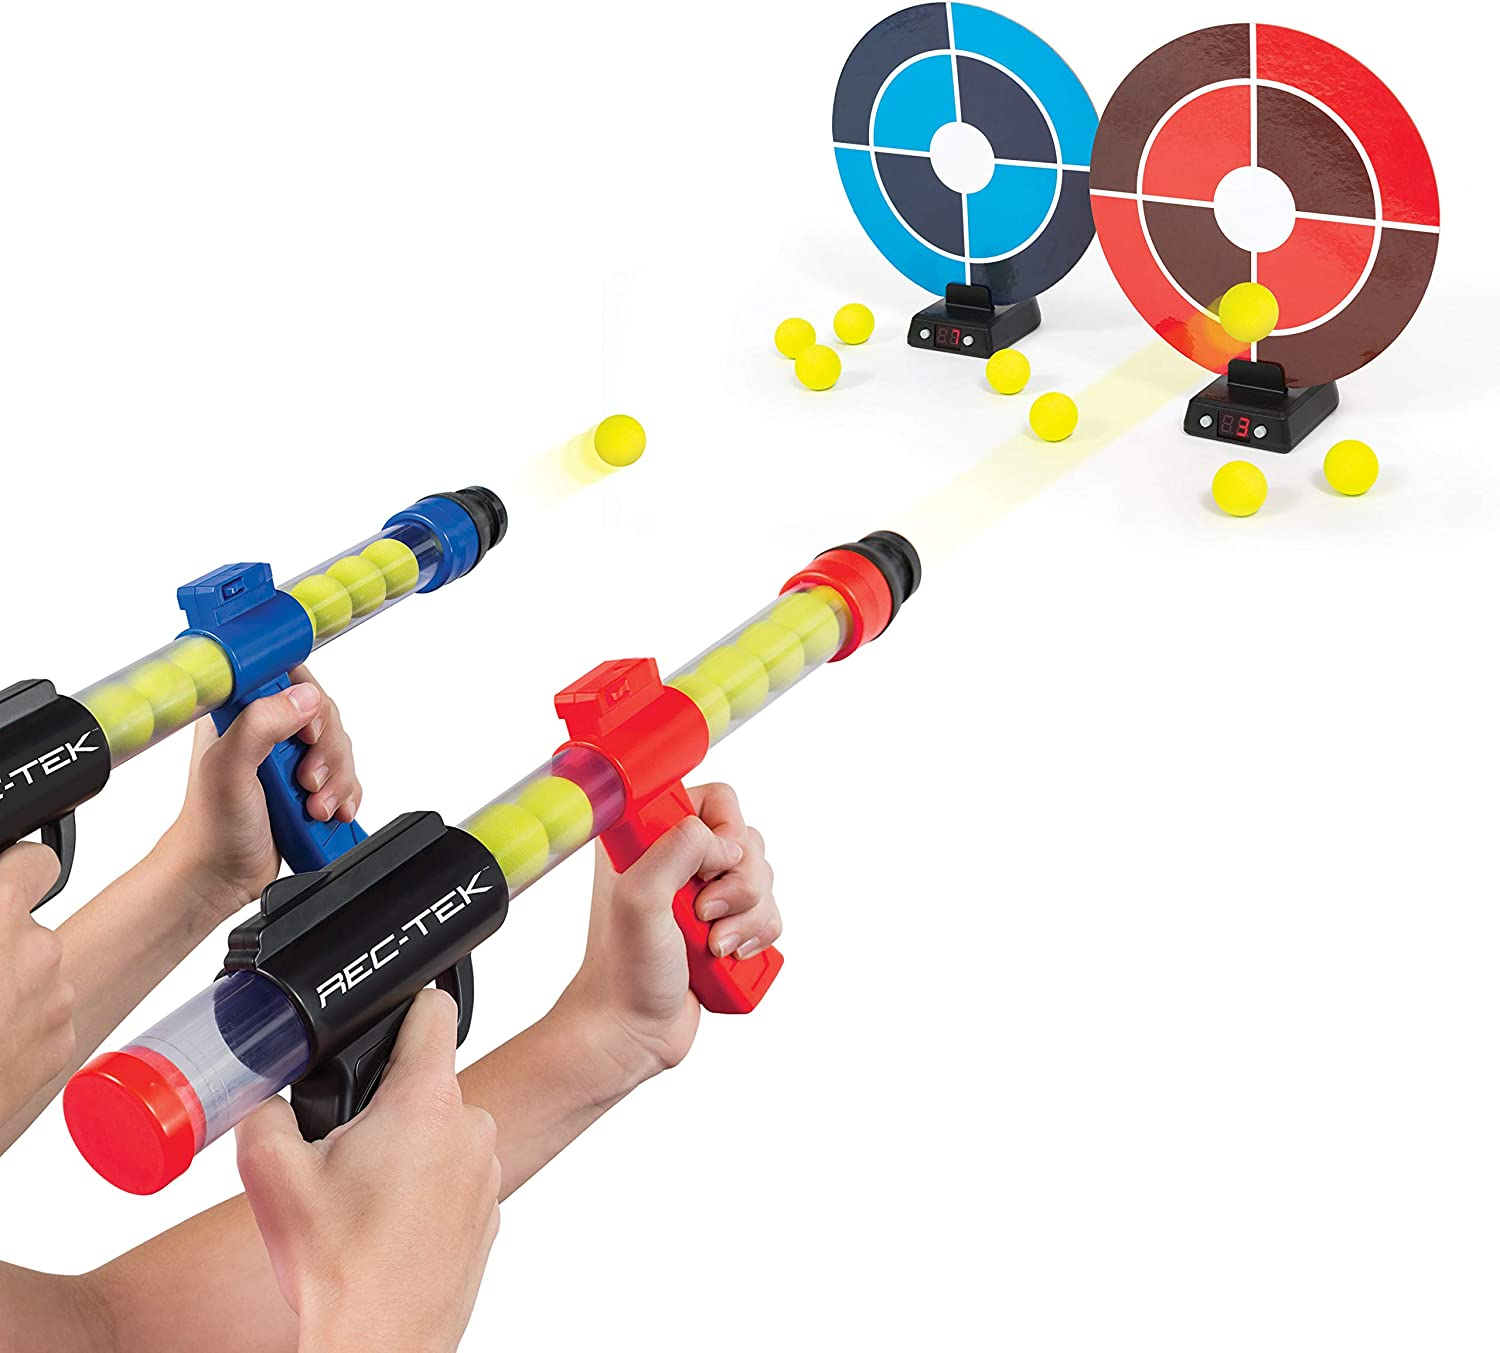 Complete with All Accessories Features Automatic Scoring Rec-Tek Dueling Sniper Shootout Game for Kids